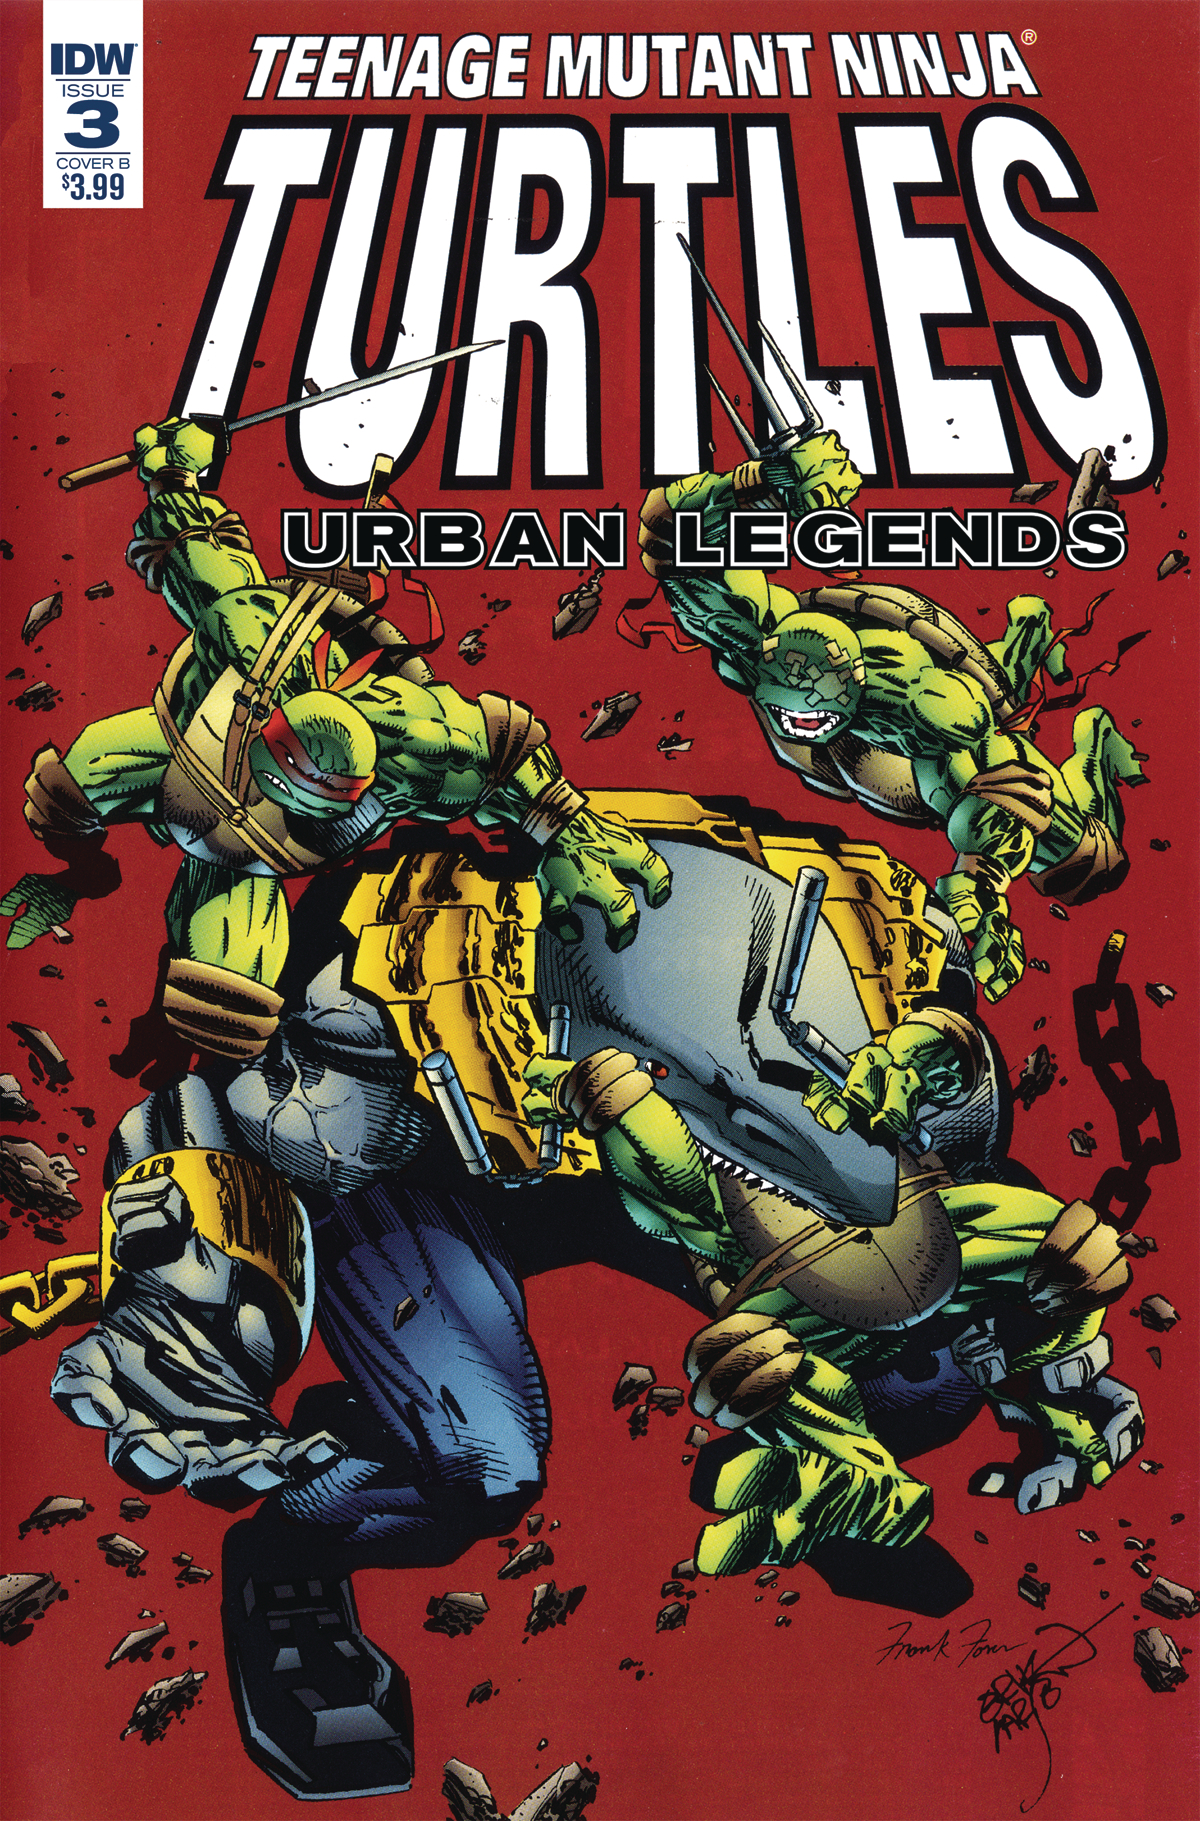 TMNT URBAN LEGENDS #3 CVR B FOSCO